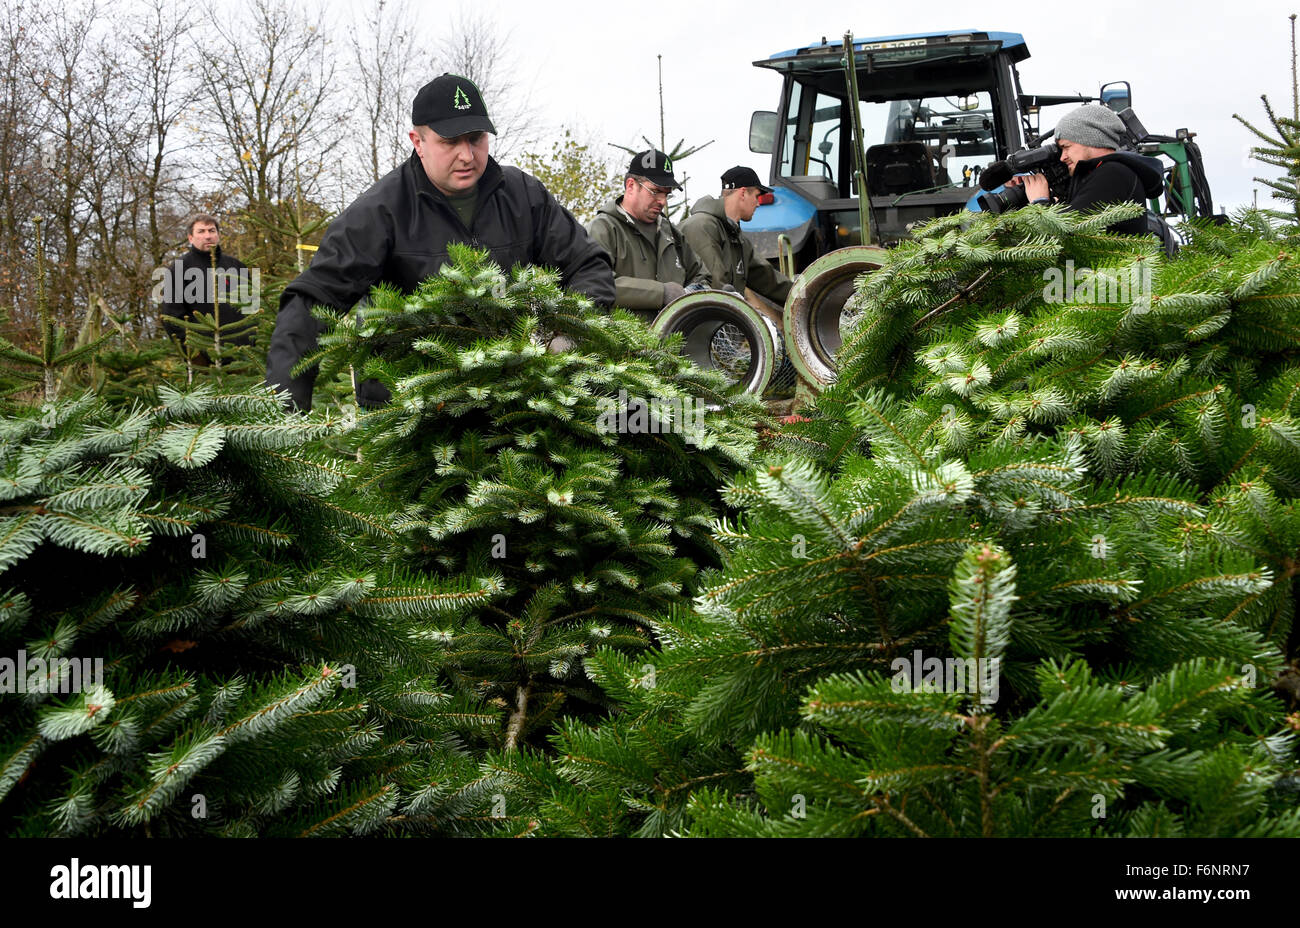 Exceptional Christmas Tree Producers Part - 6: The Christmas Tree Season Has Officially Begun In Schleswig-Holstein. There  Are Around 200 Christmas Tree Producers ...